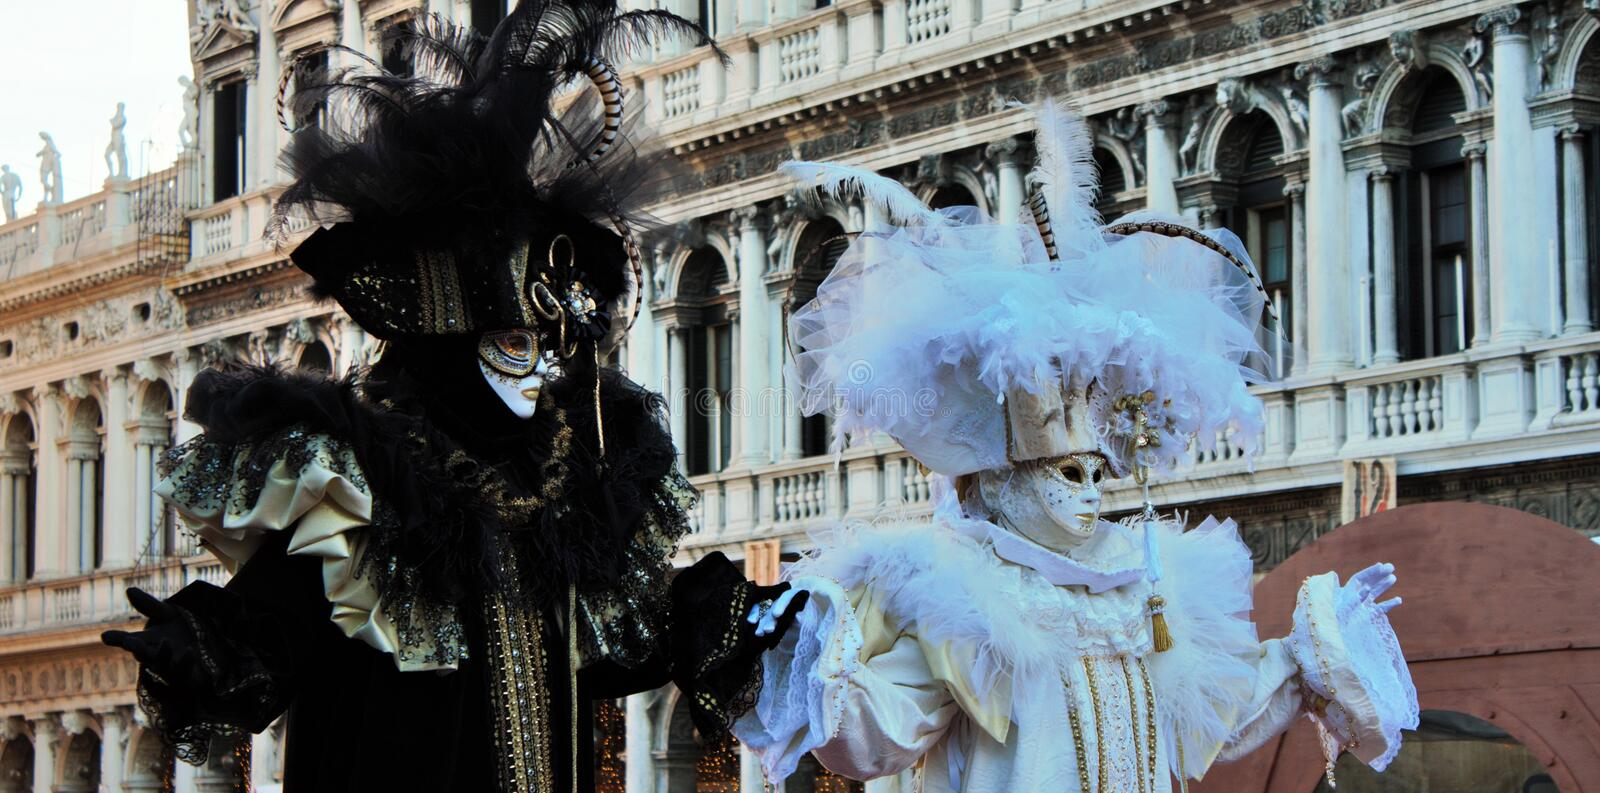 Venice carnival, portrait of a mask, during the Venetian carnival in the whole city there are wonderful masks. stock photography